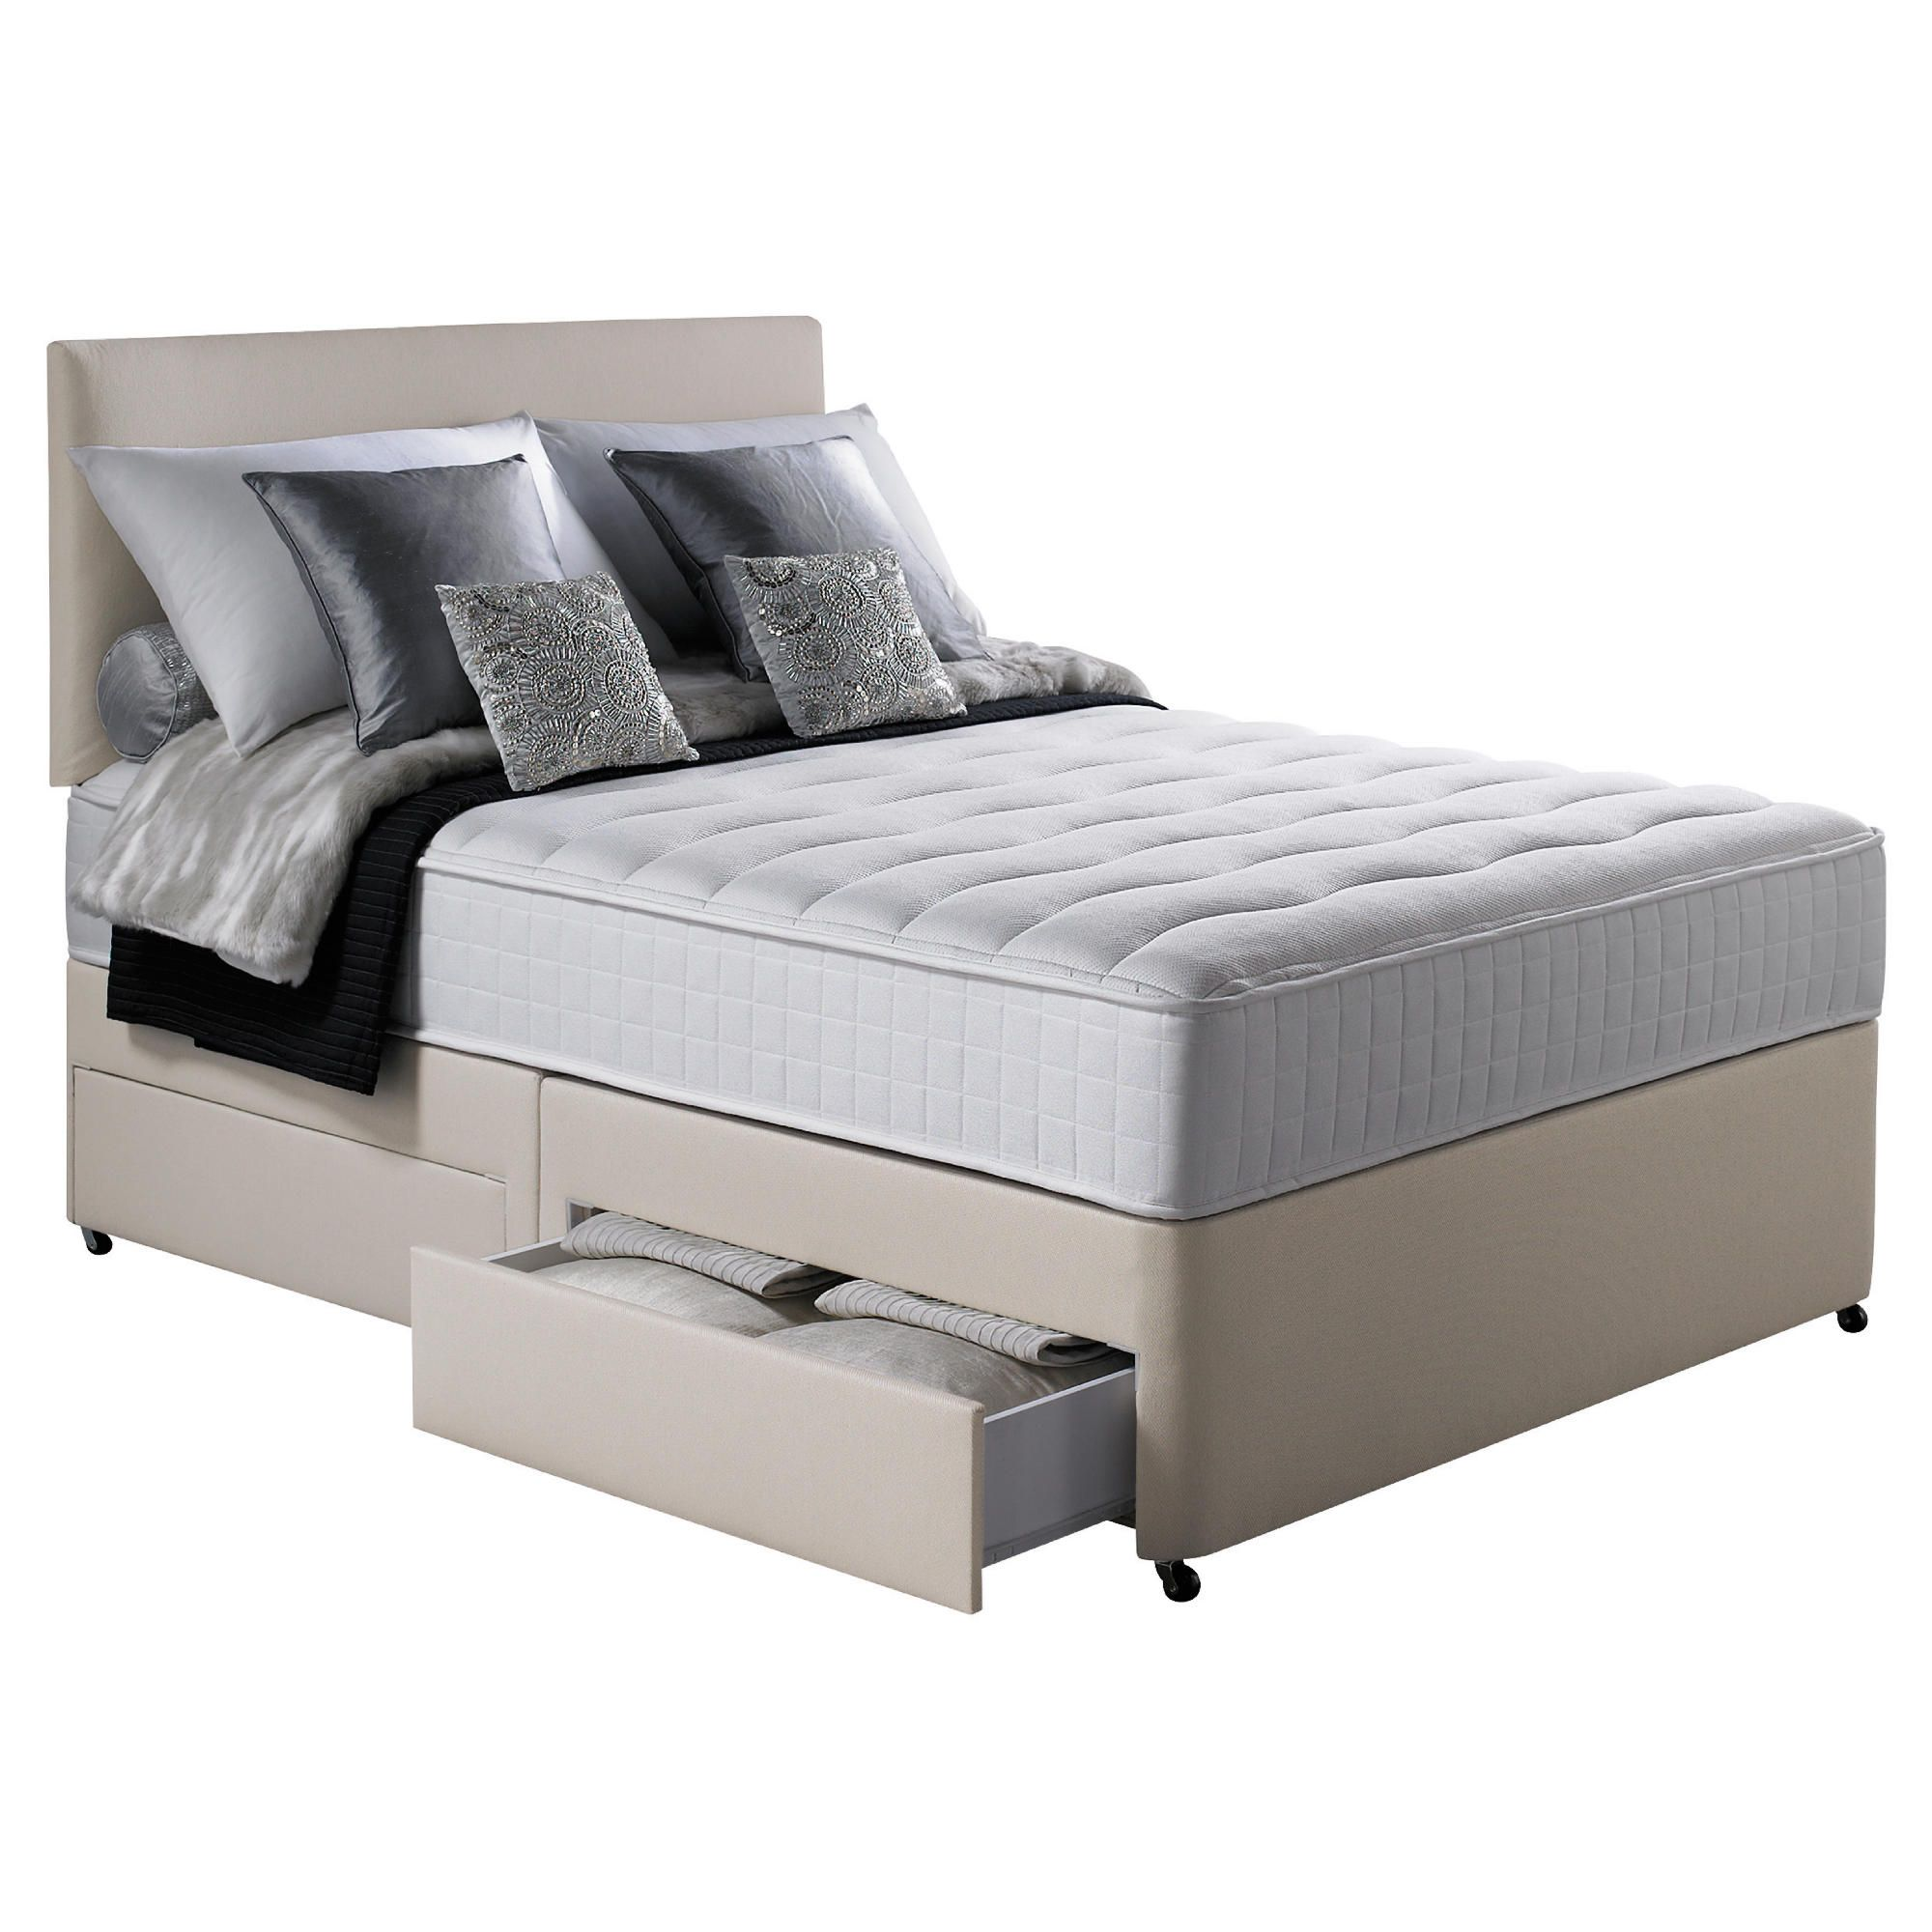 Silentnight Pocket Essentials Memory Foam Double 4 Drawer Divan Bed at Tesco Direct